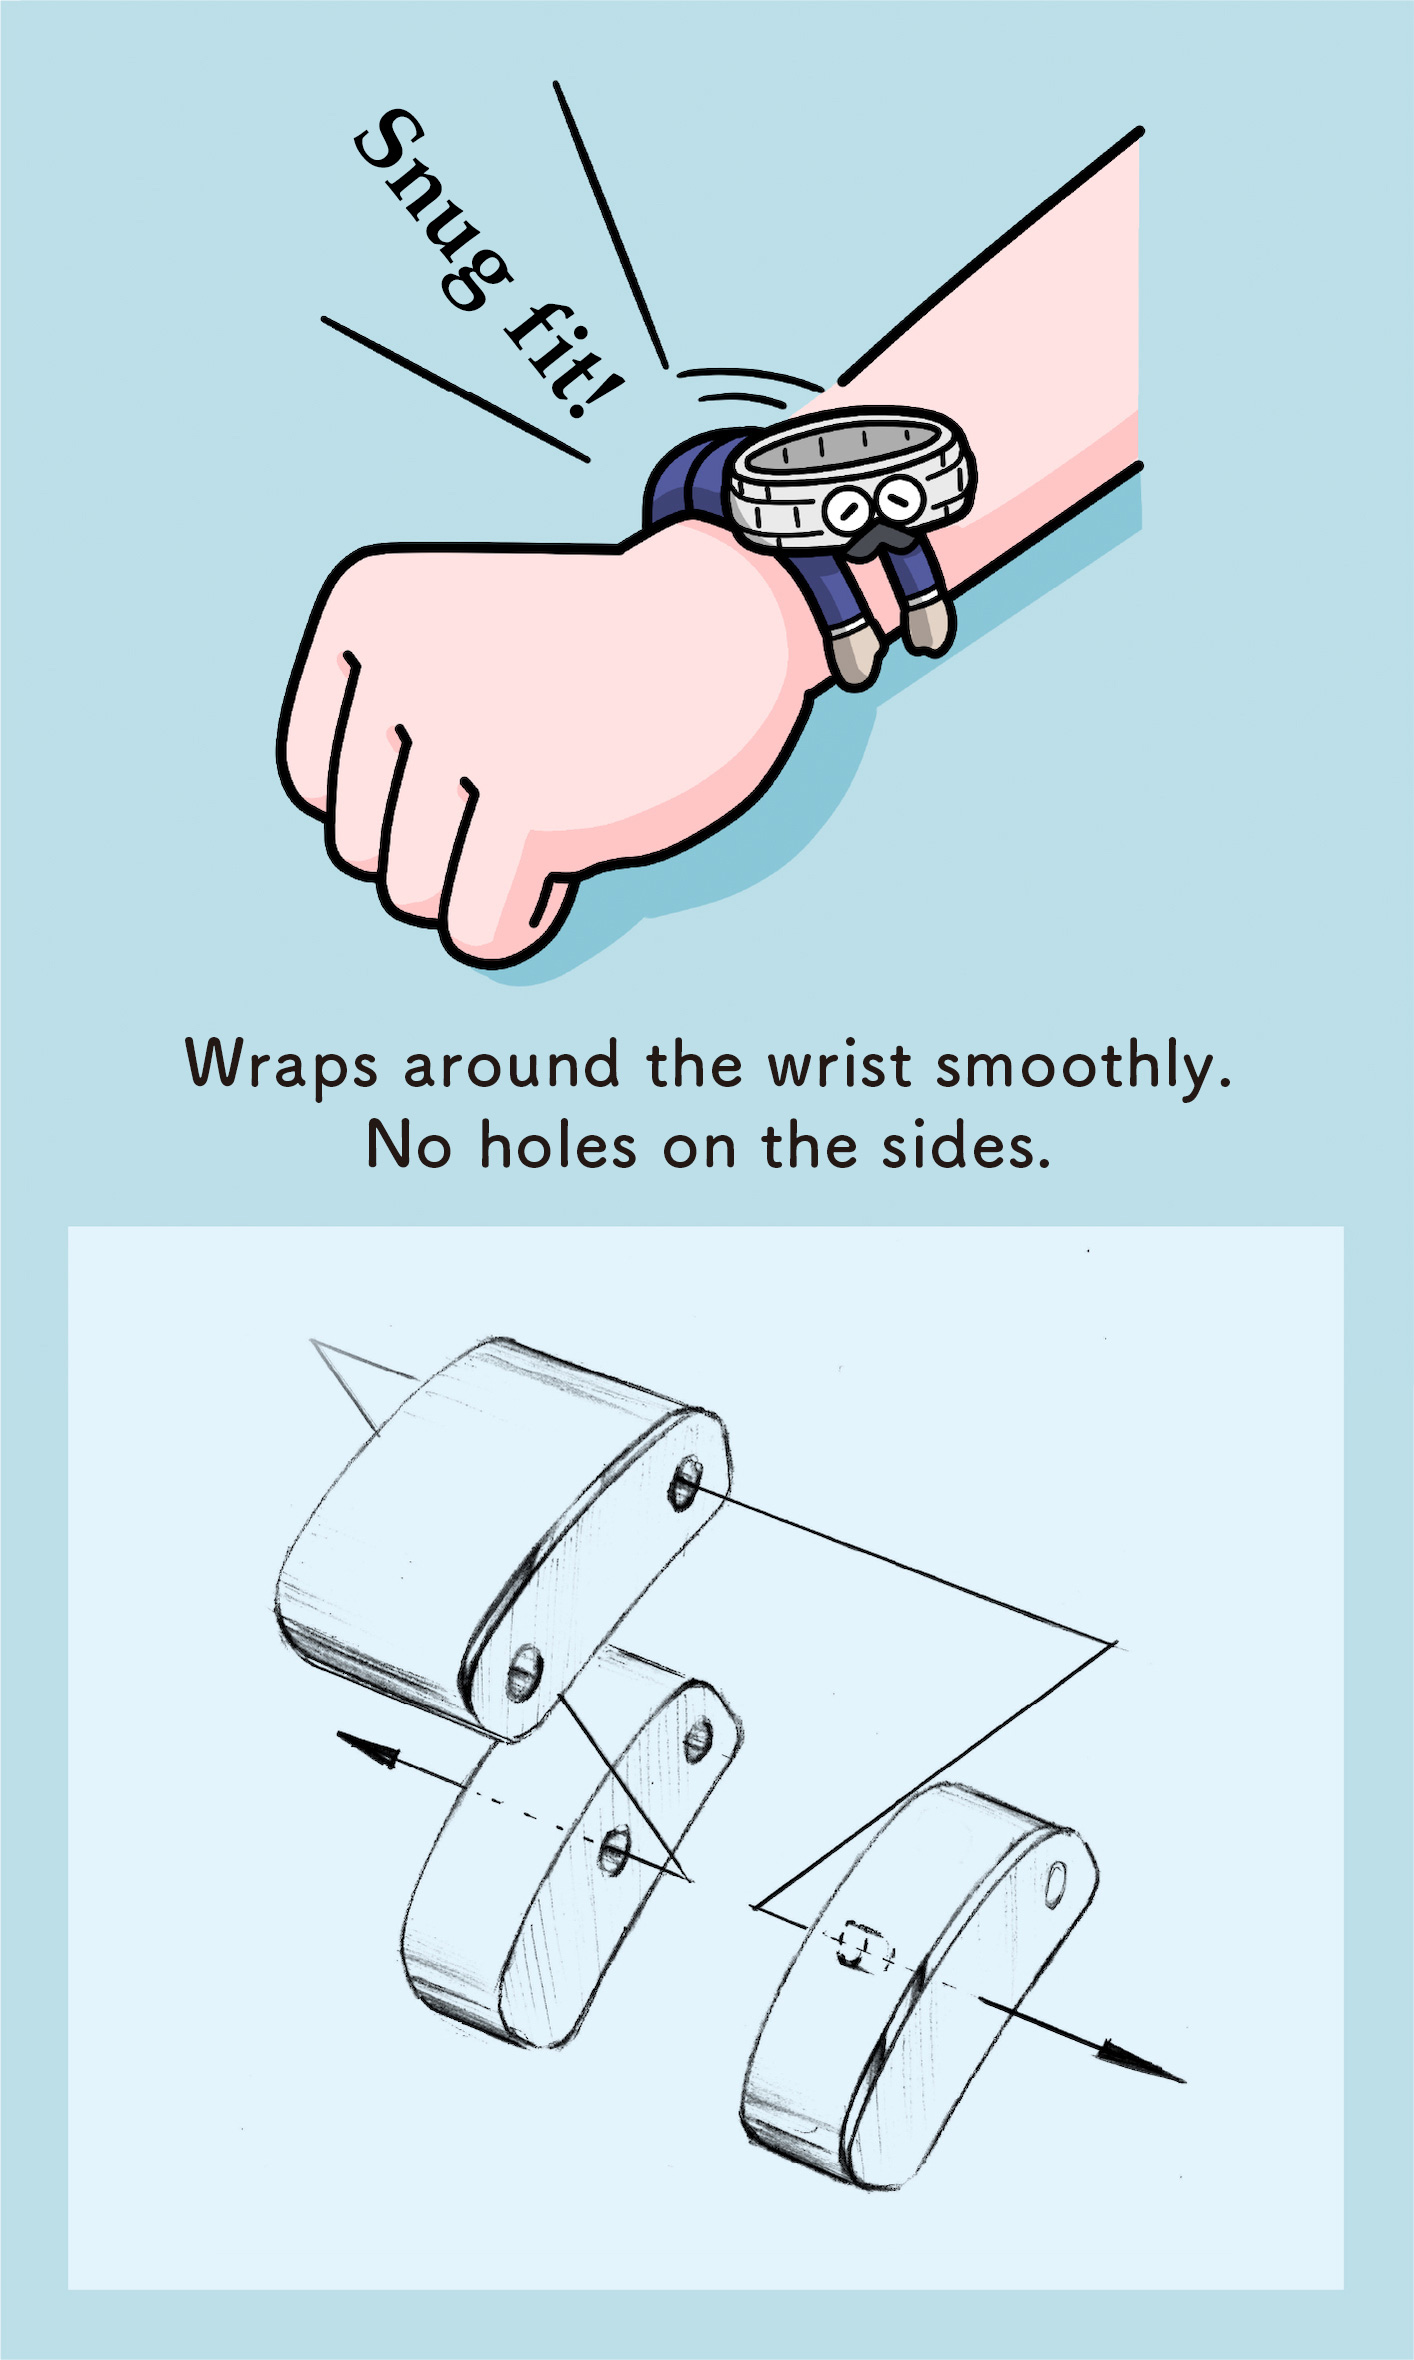 Wraps around the wrist smoothly. No holes on the sides. (Illustration of the structure of links)